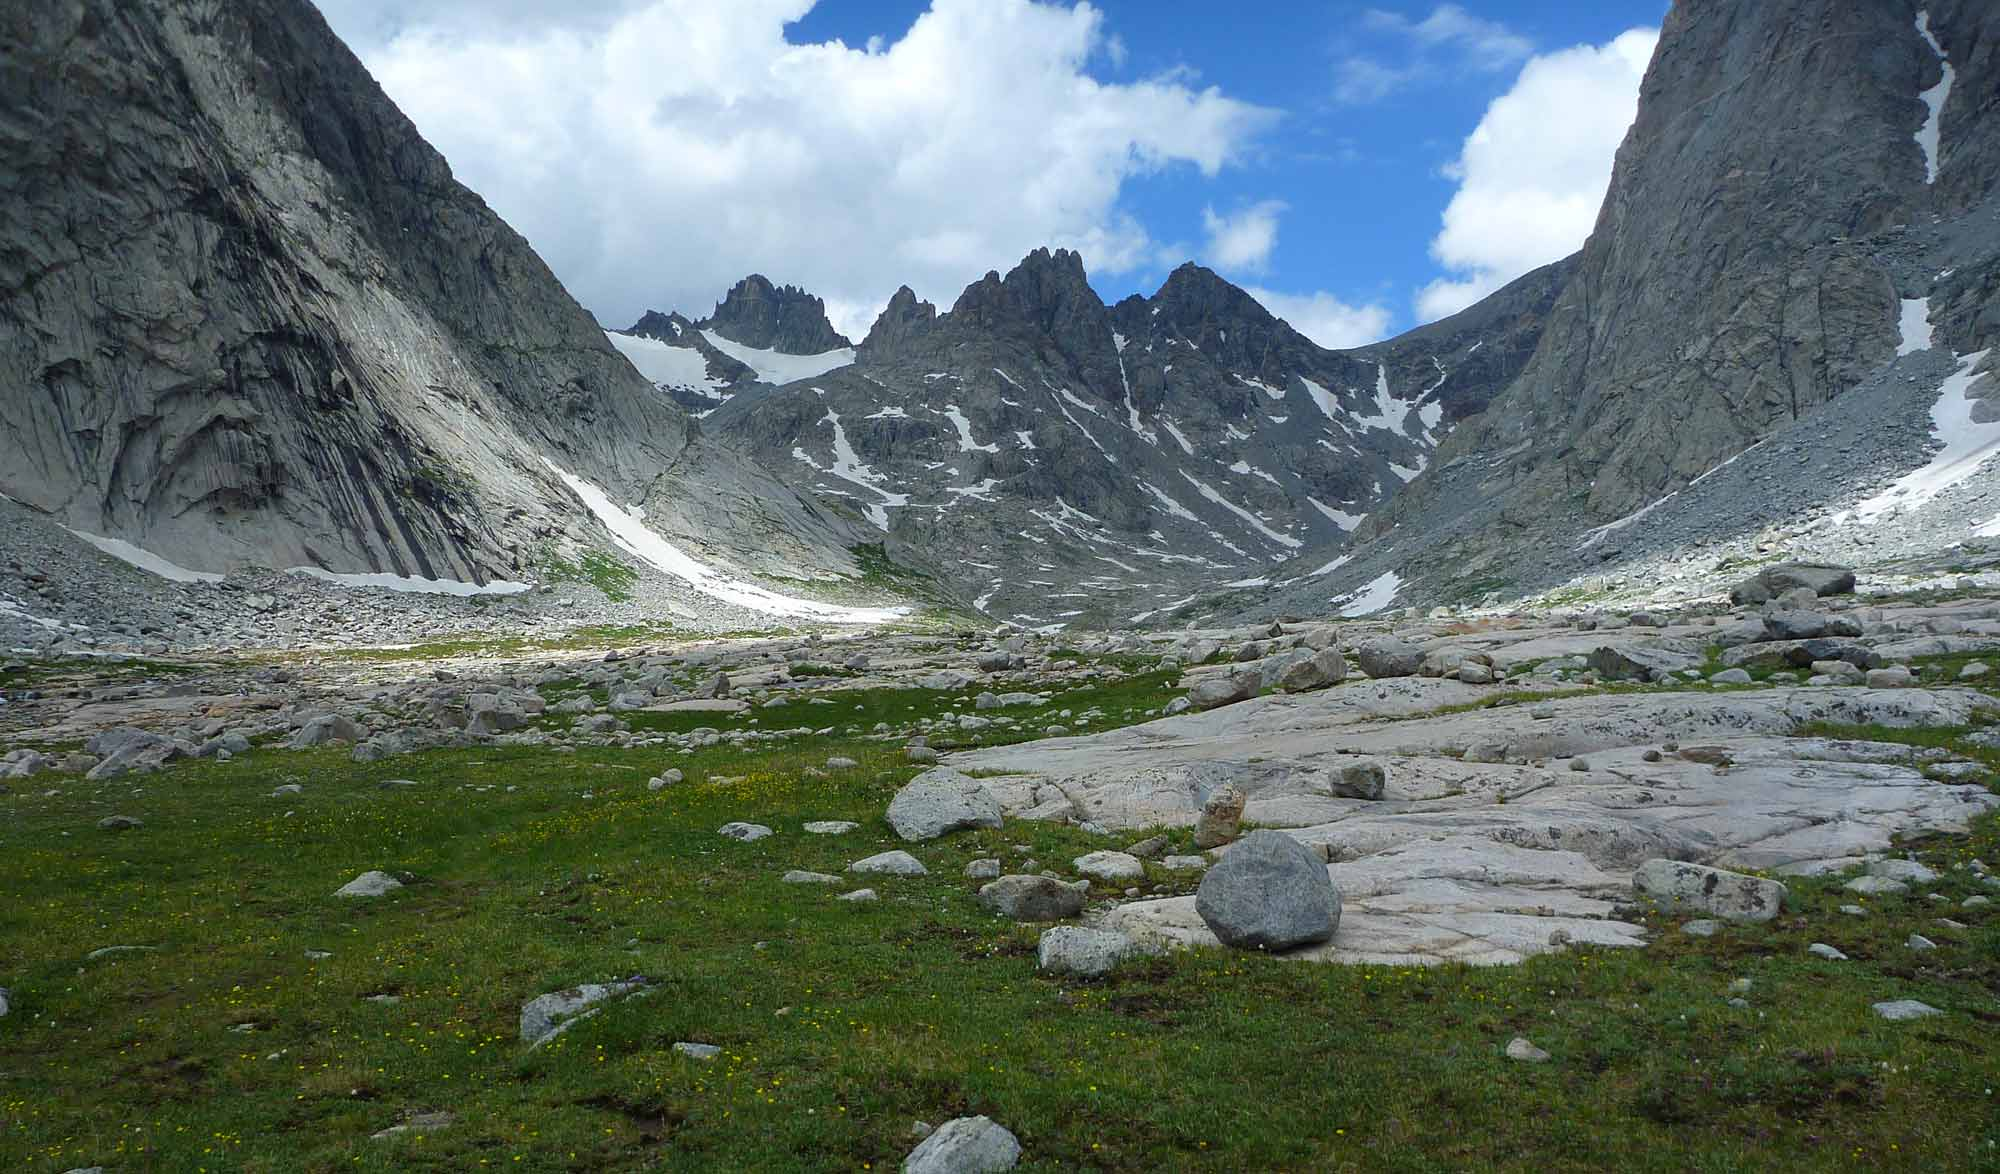 Titcomb Basin - Wind River Range